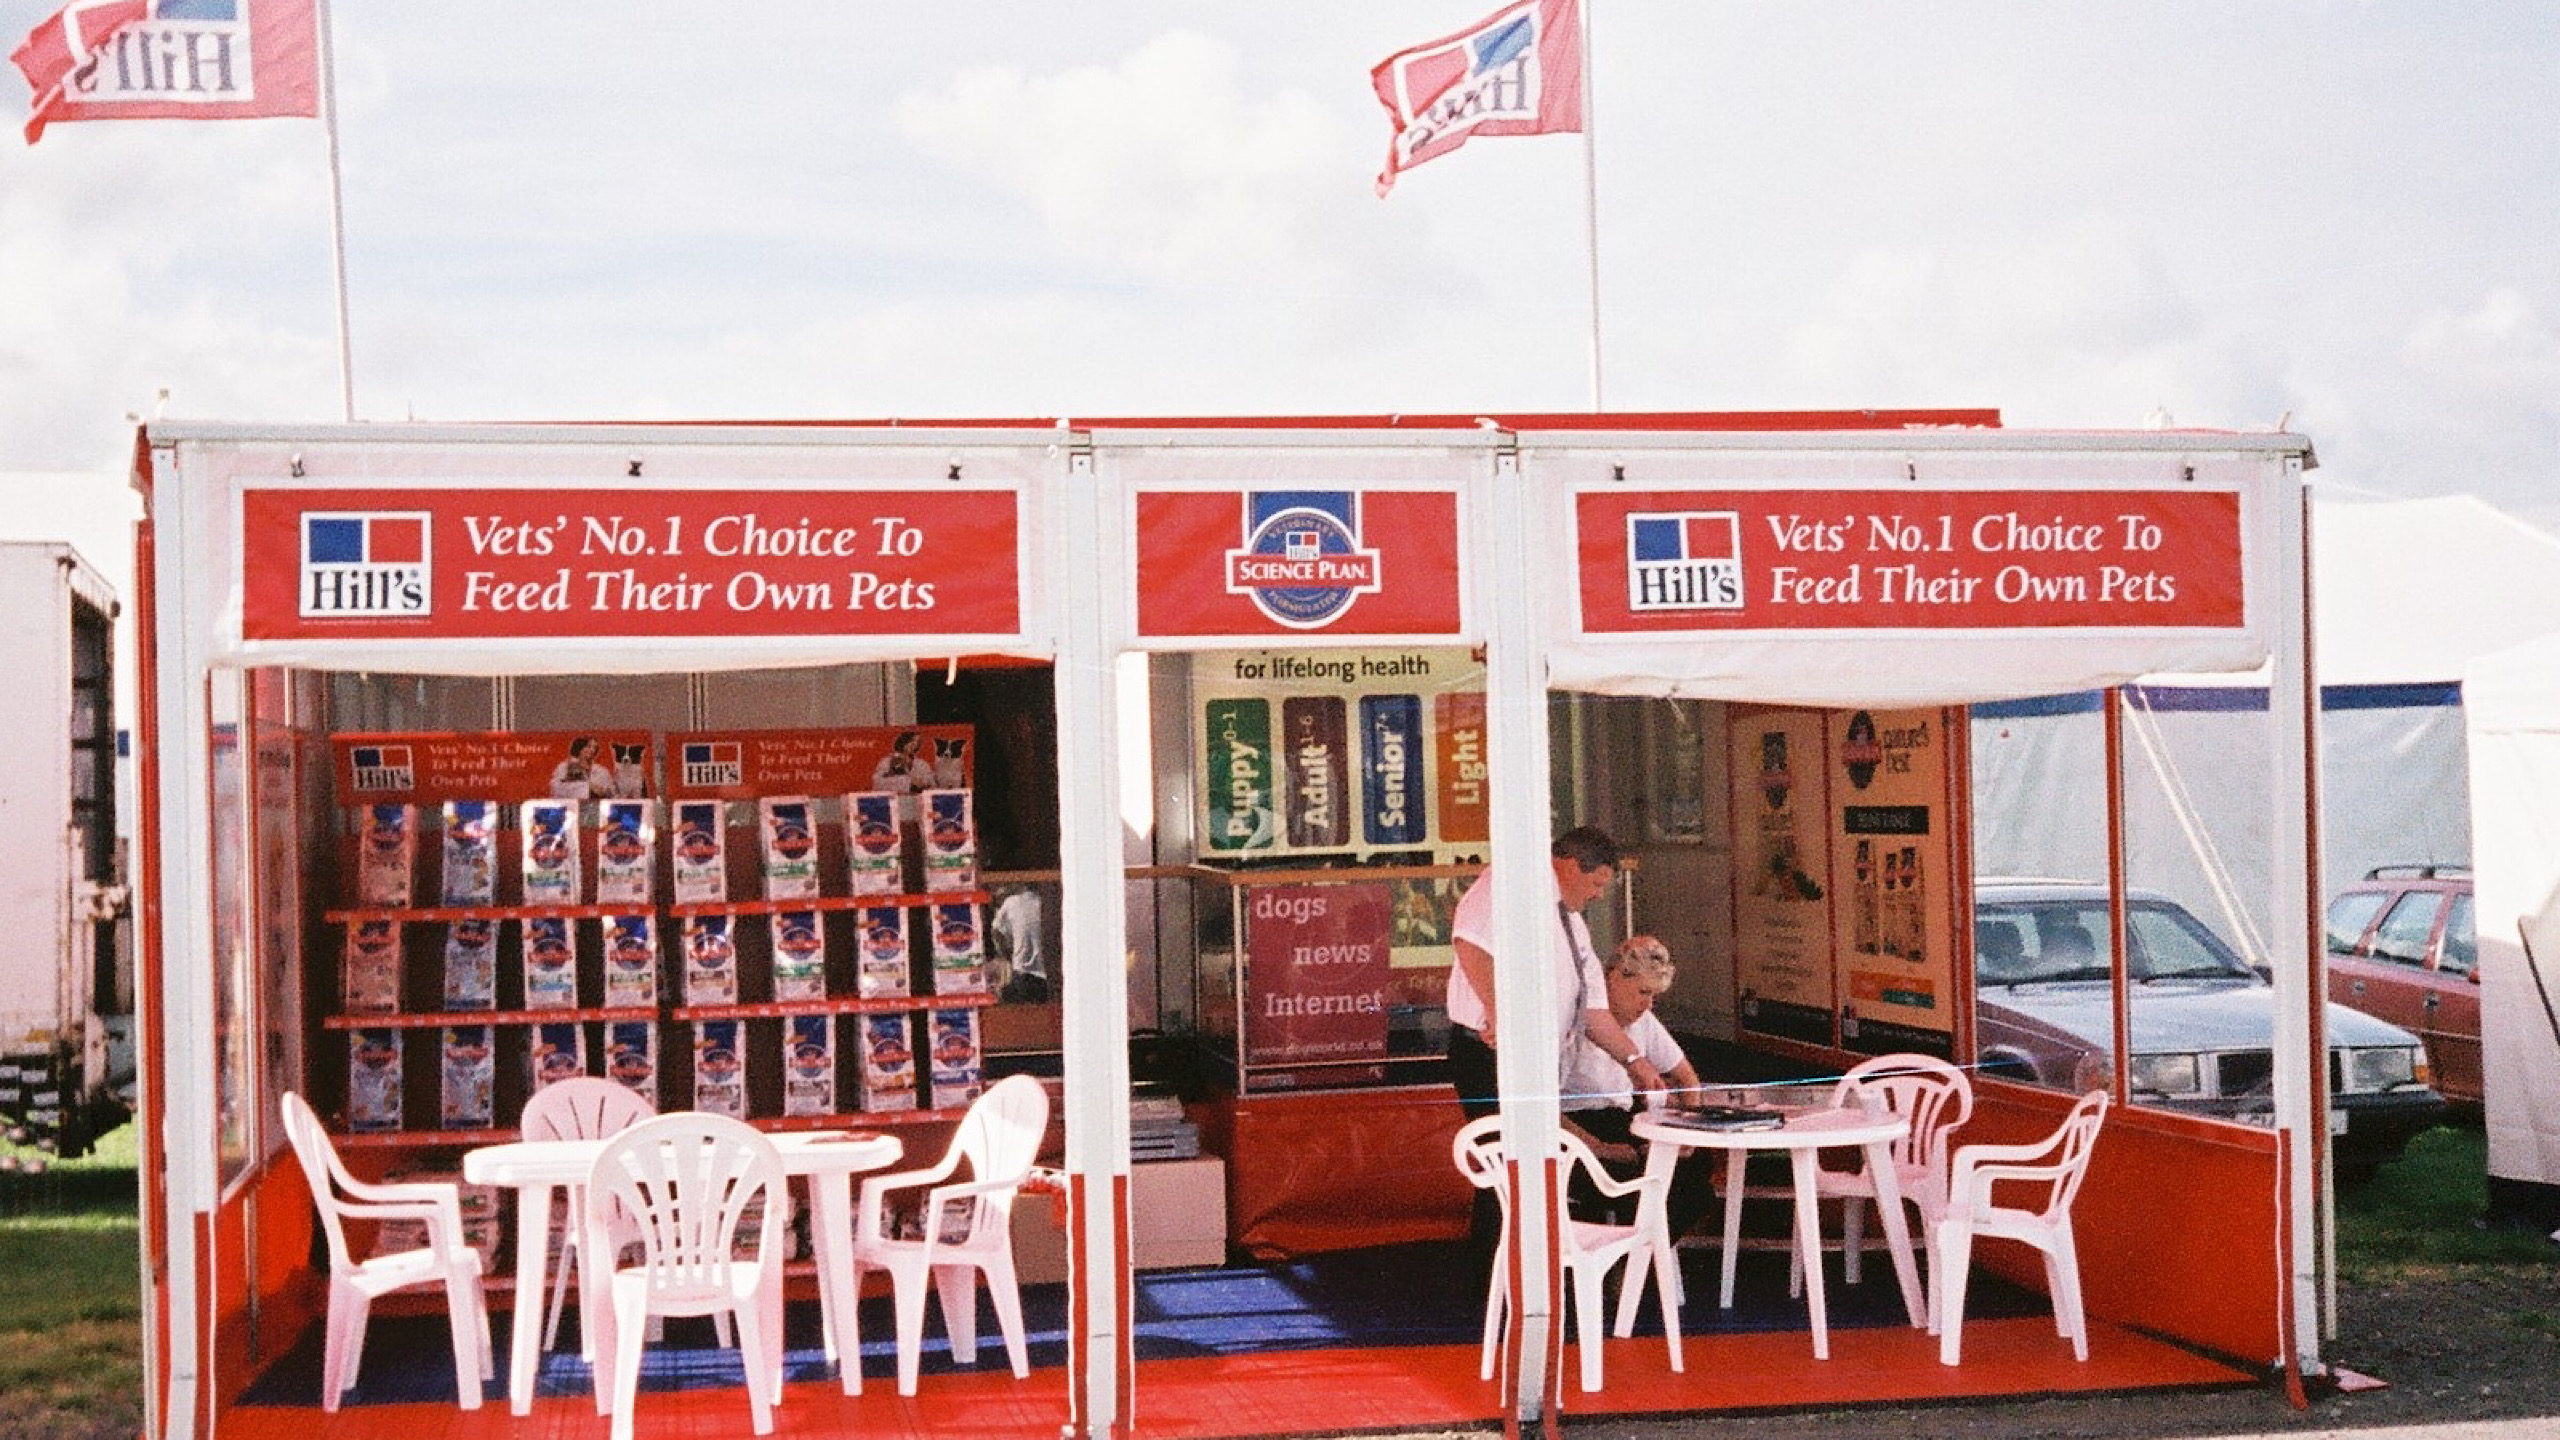 Contract exhibition services outside exhibition stands